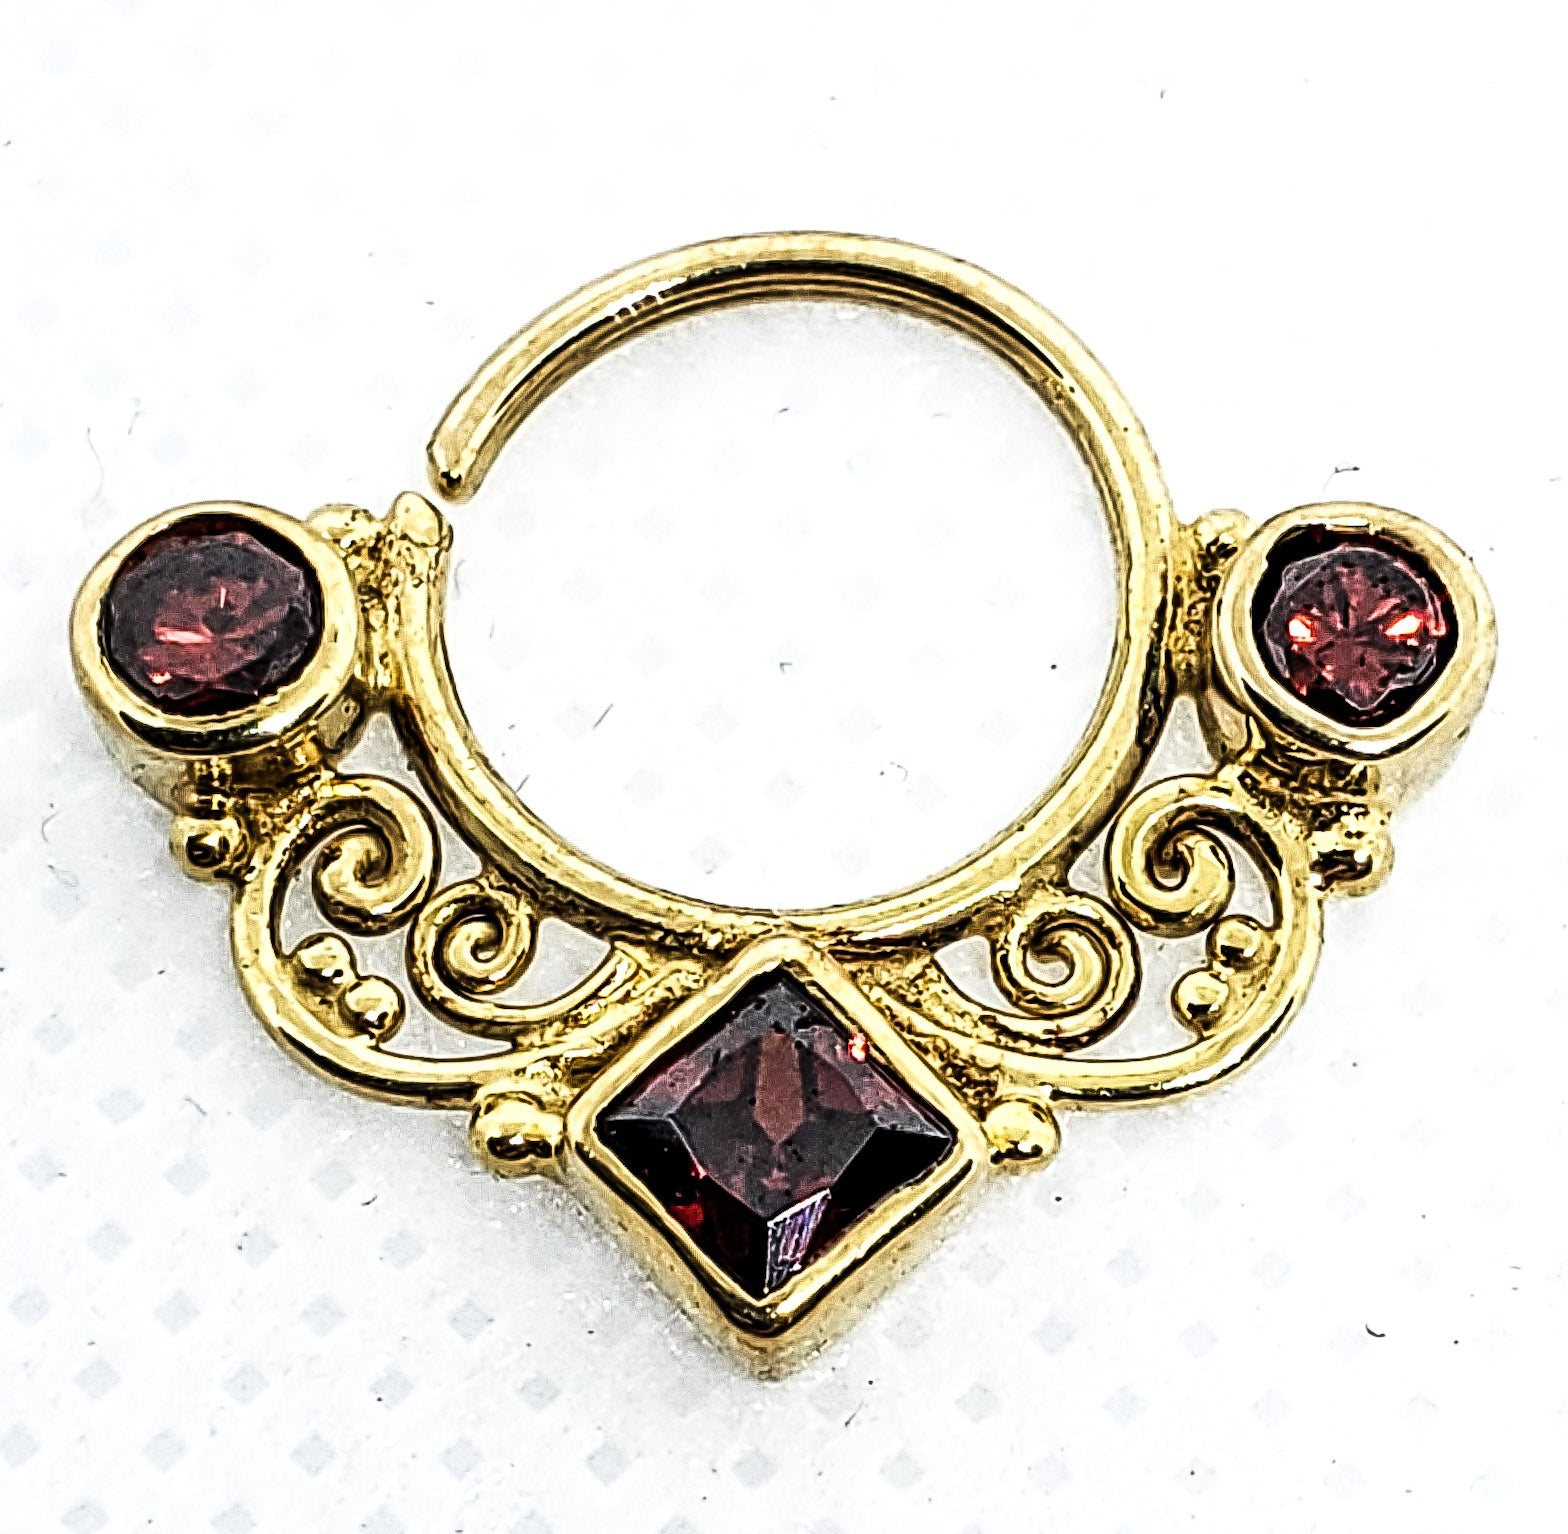 16 Gauge 14K Gold Plated Bendable Ring With Rubies.